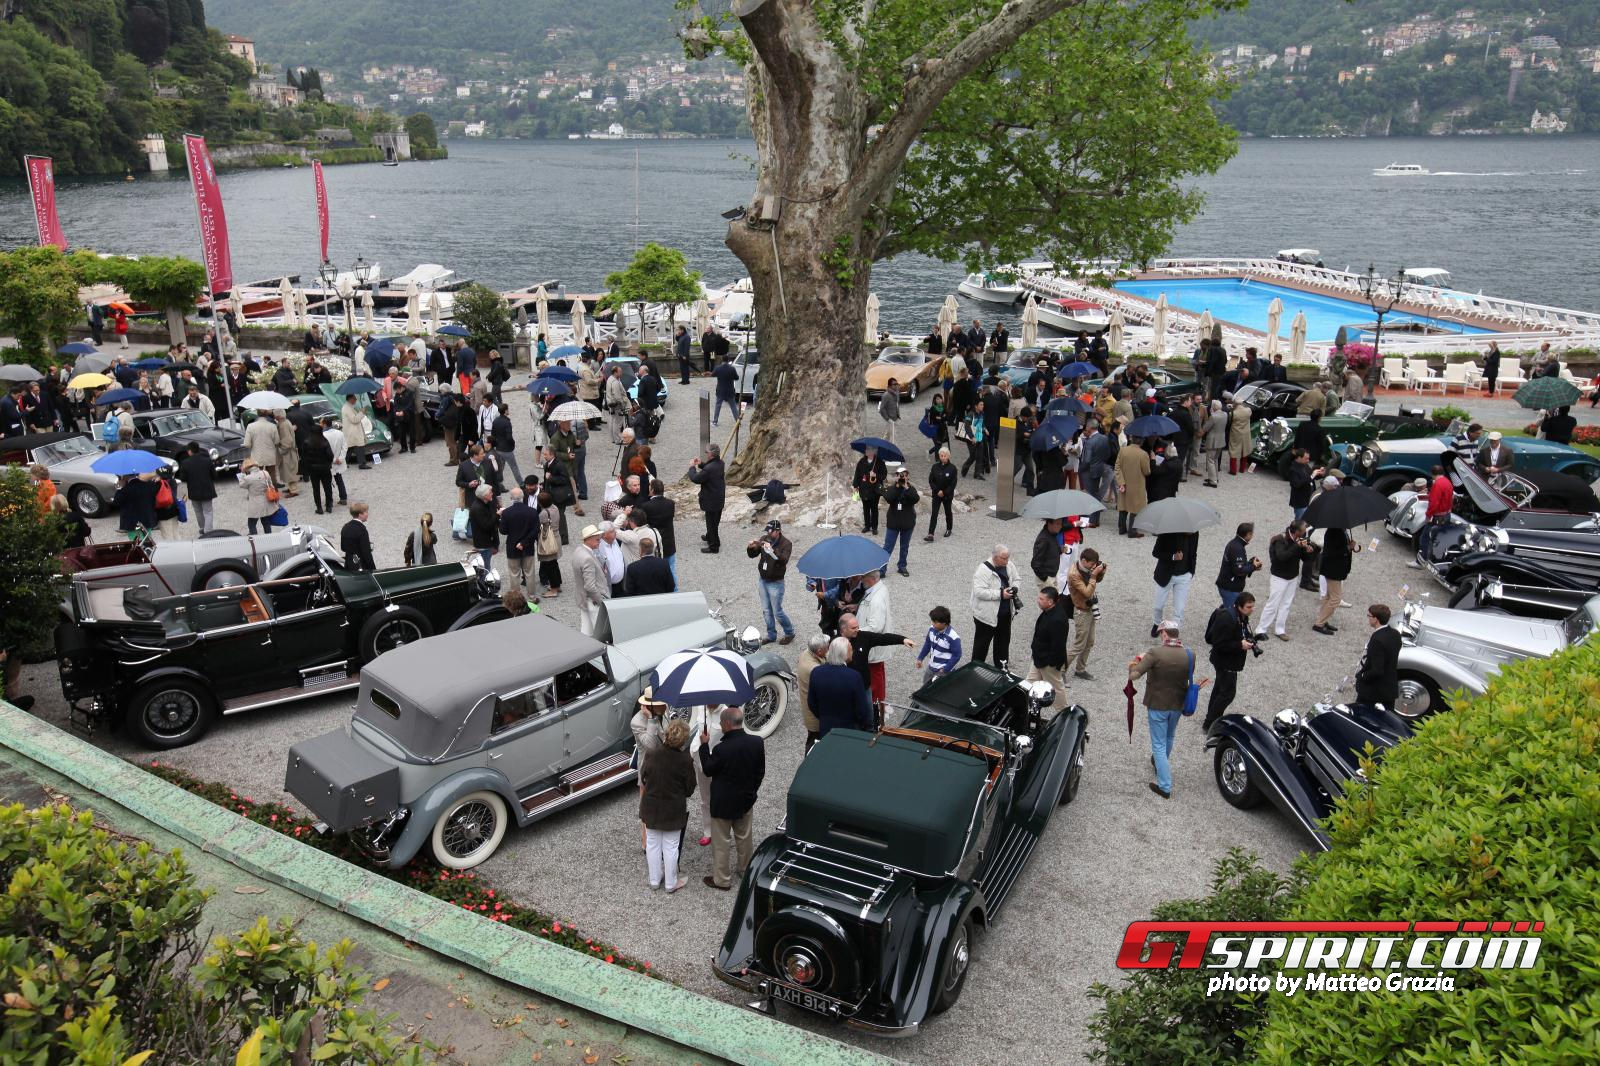 Concours d 39 elegance villa d 39 este 2013 highlights gtspirit for Motor inn spirit lake